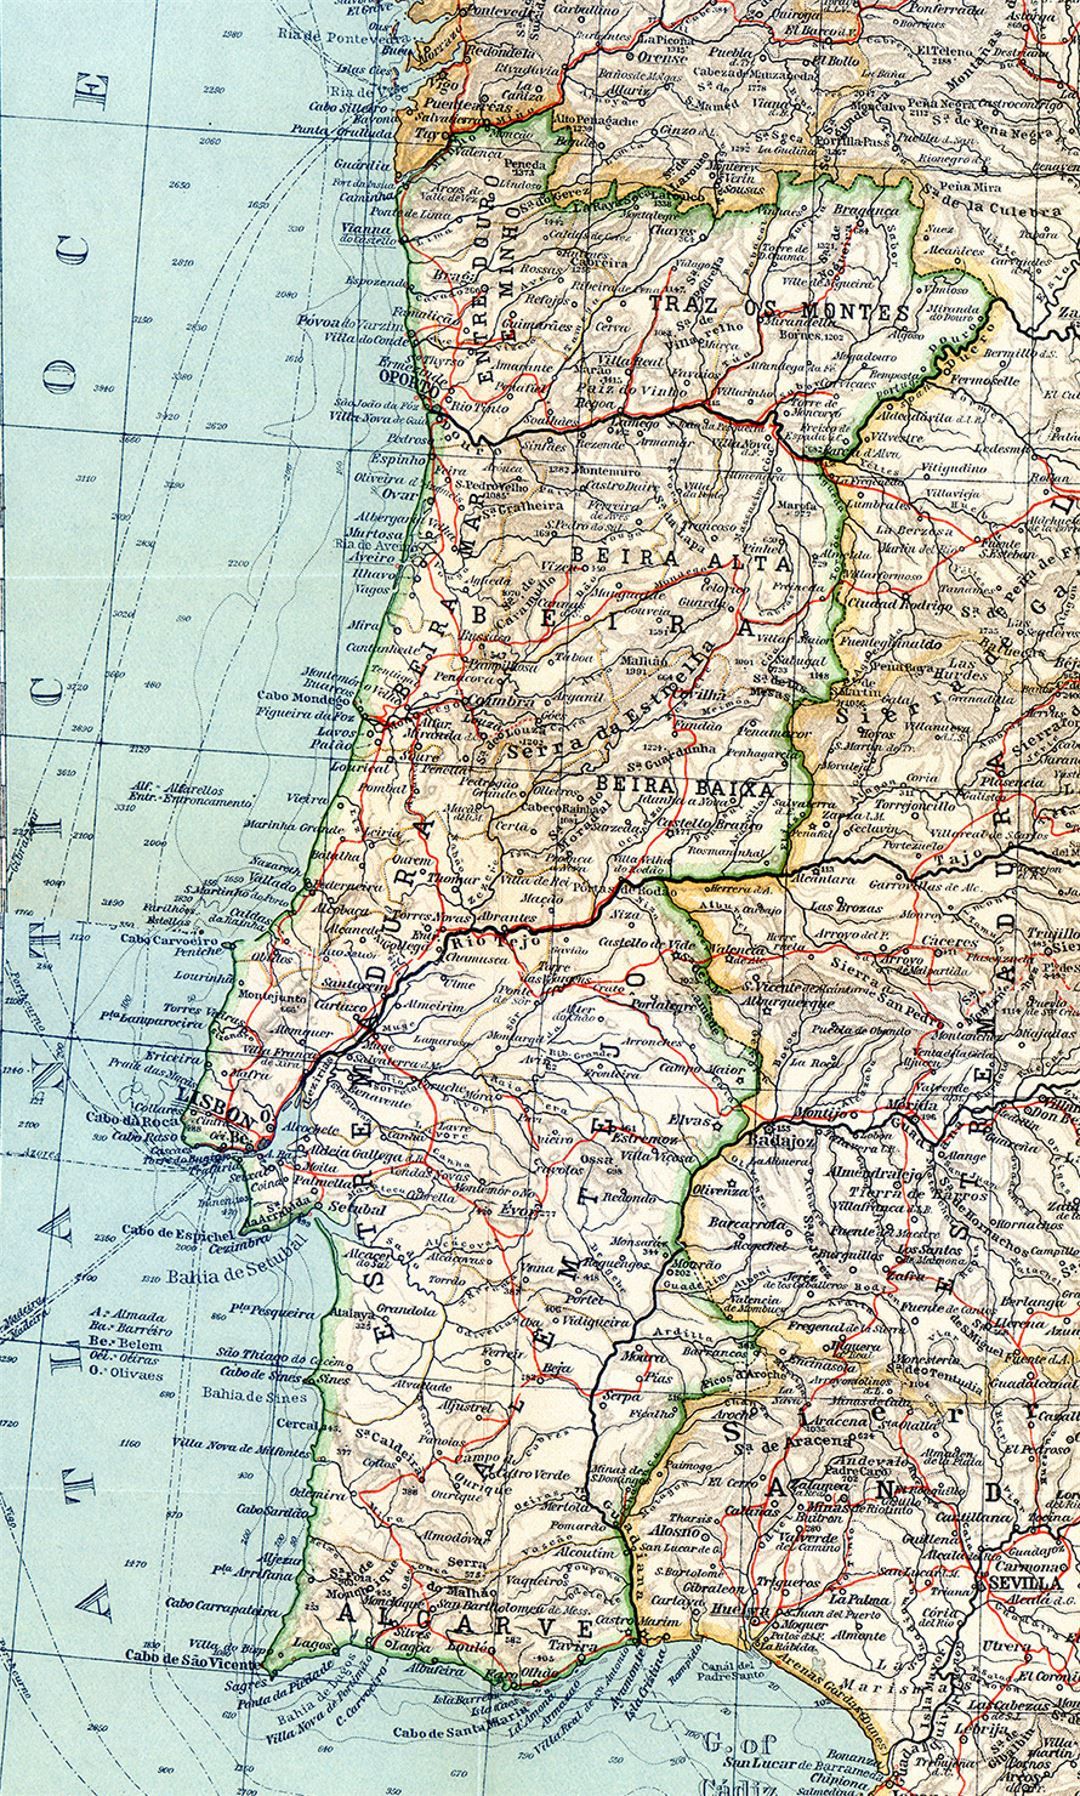 Large map of Portugal with relief, roads and cities